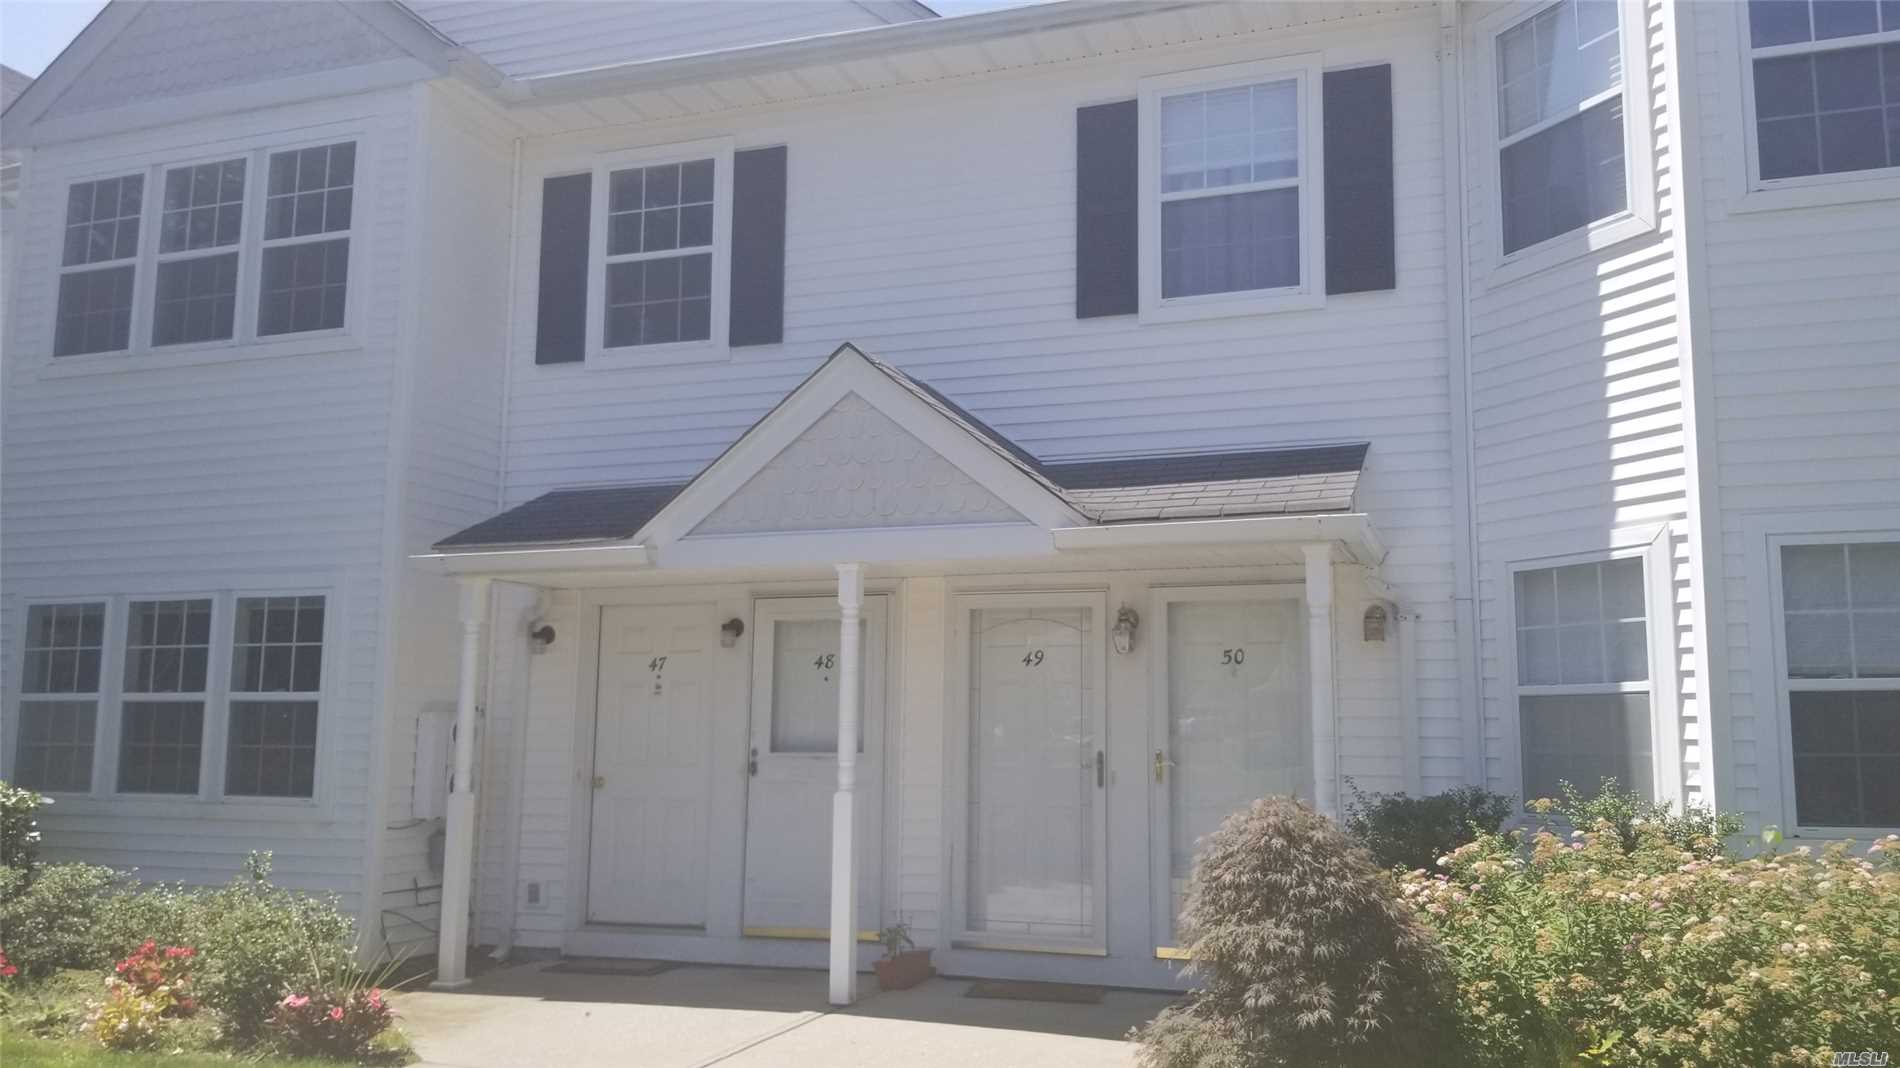 Property for sale at 48 Country View Ln, Middle Island,  NY 11953